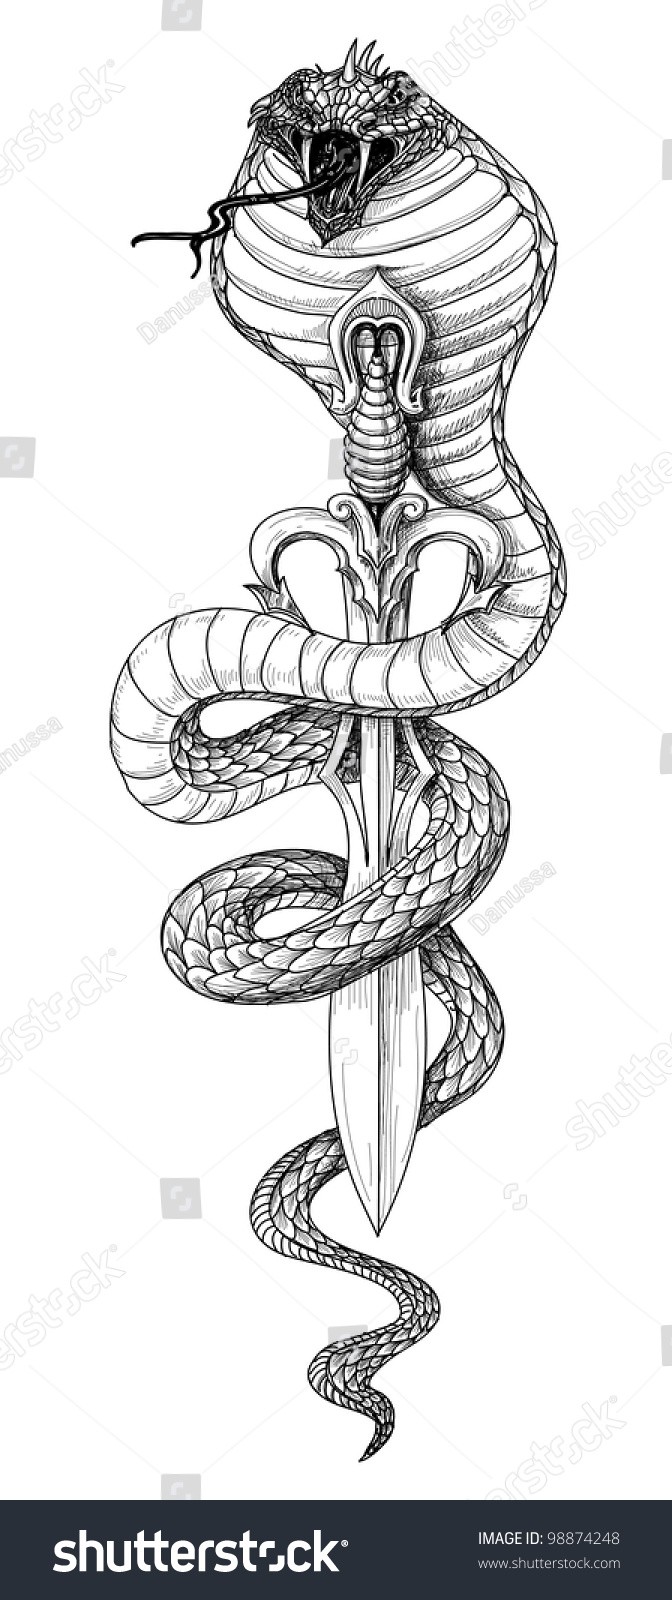 snake sword detailed pencil drawing stock vector 98874248